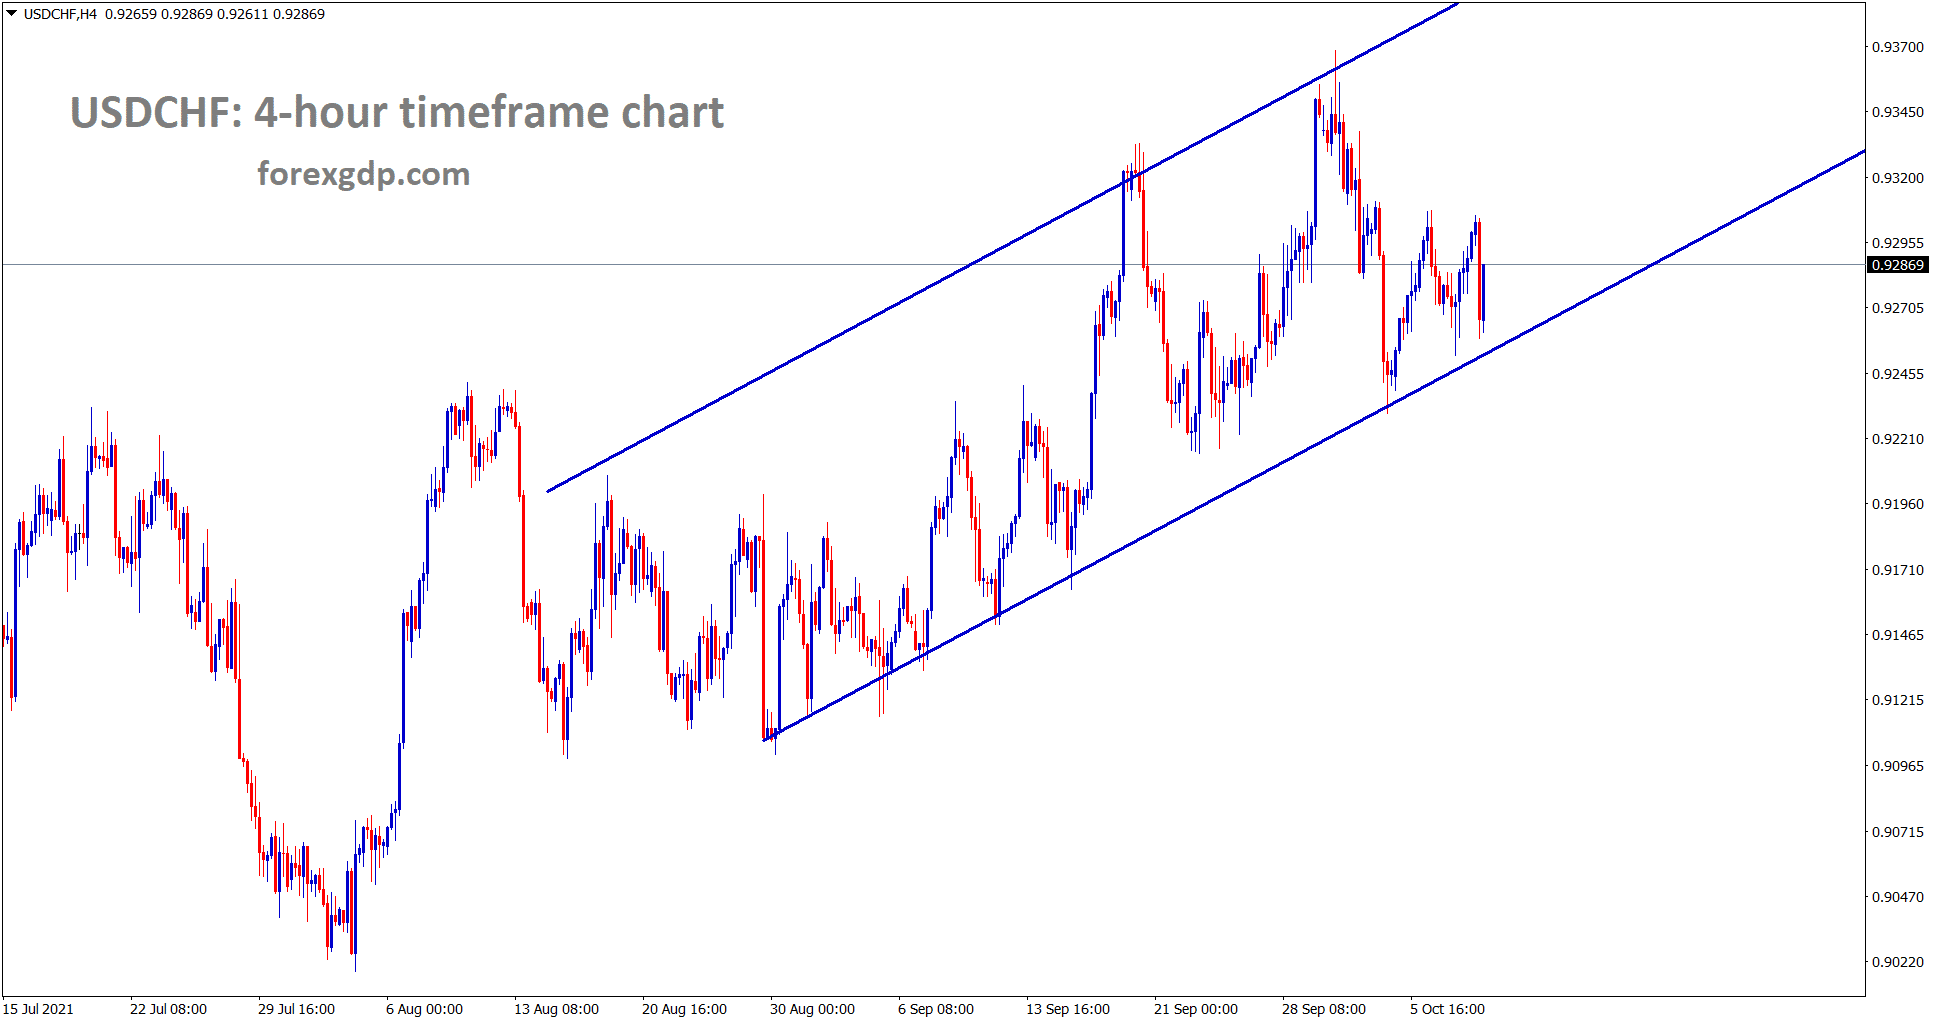 USDCHF is still moving in an ascending channel range for a long time